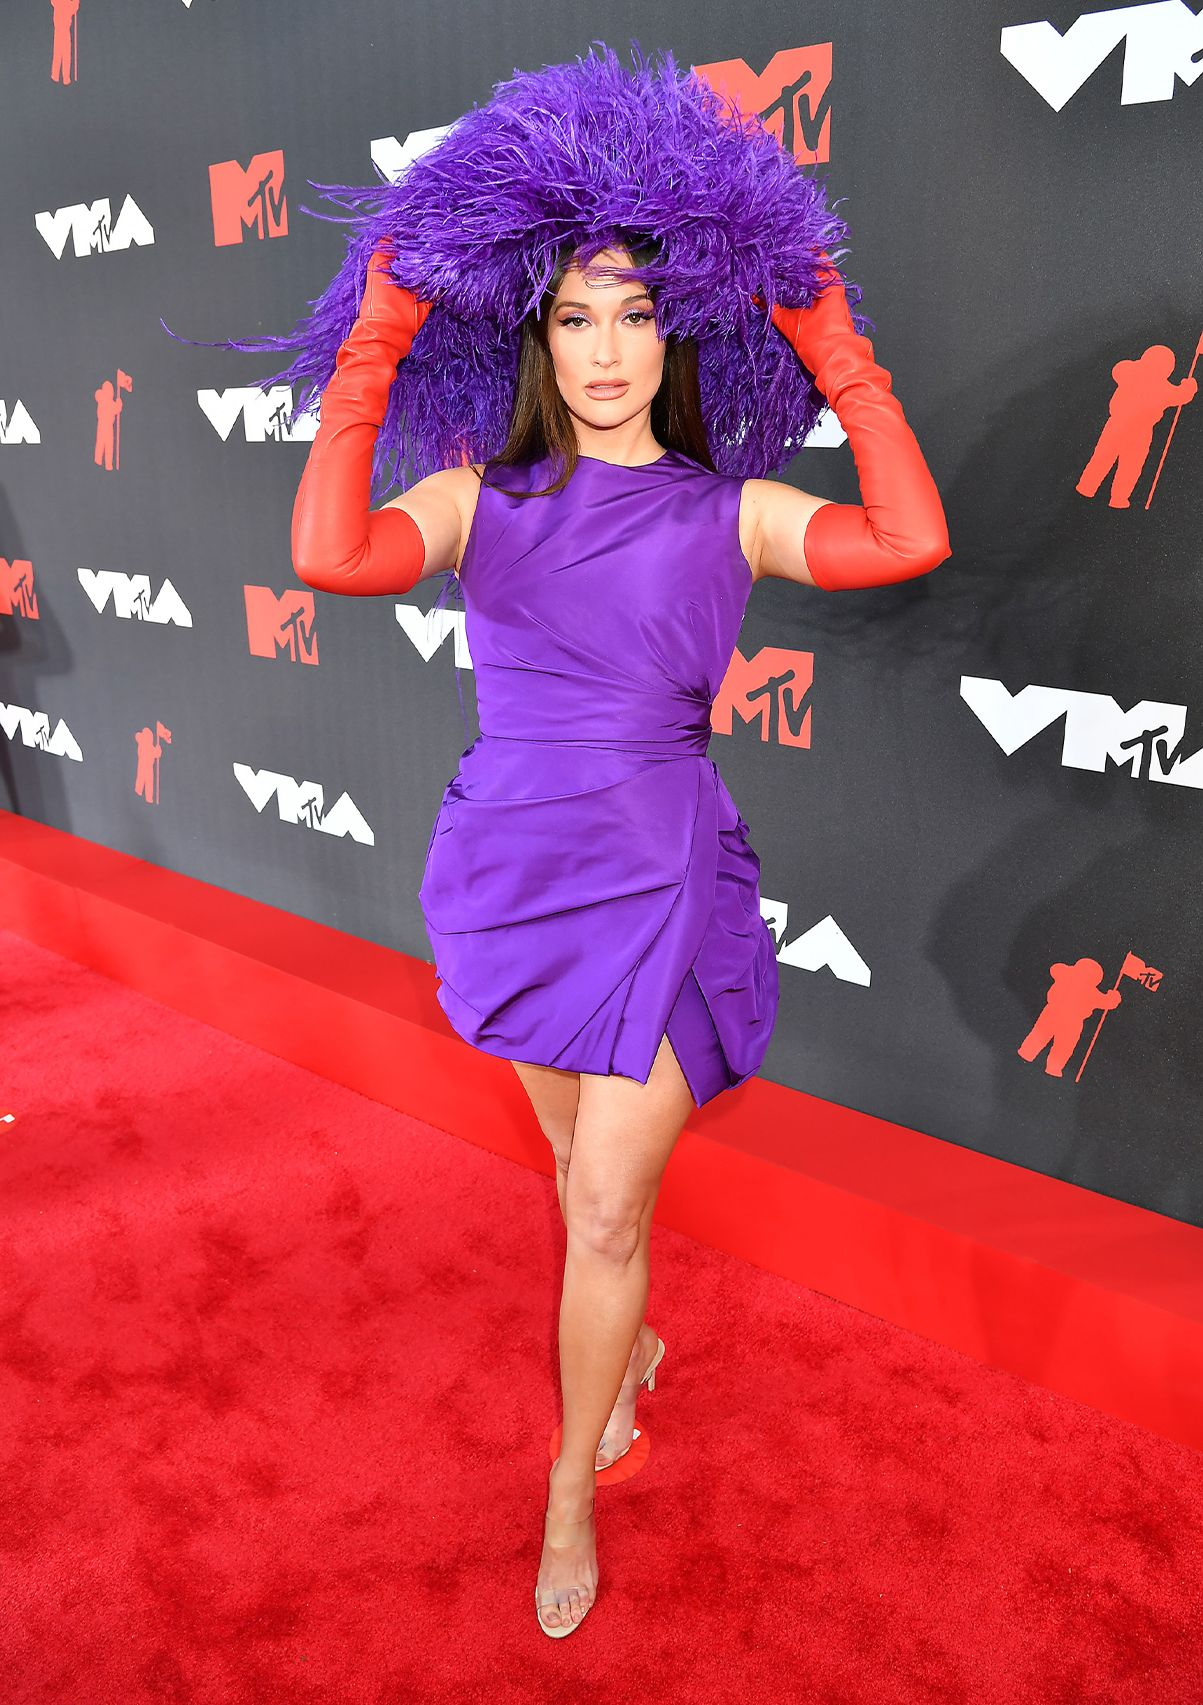 The MTV VMAs Red Carpet Looks That Shocked and Amazed Us - mtv vma red carpet 2021 295172 1631487101181